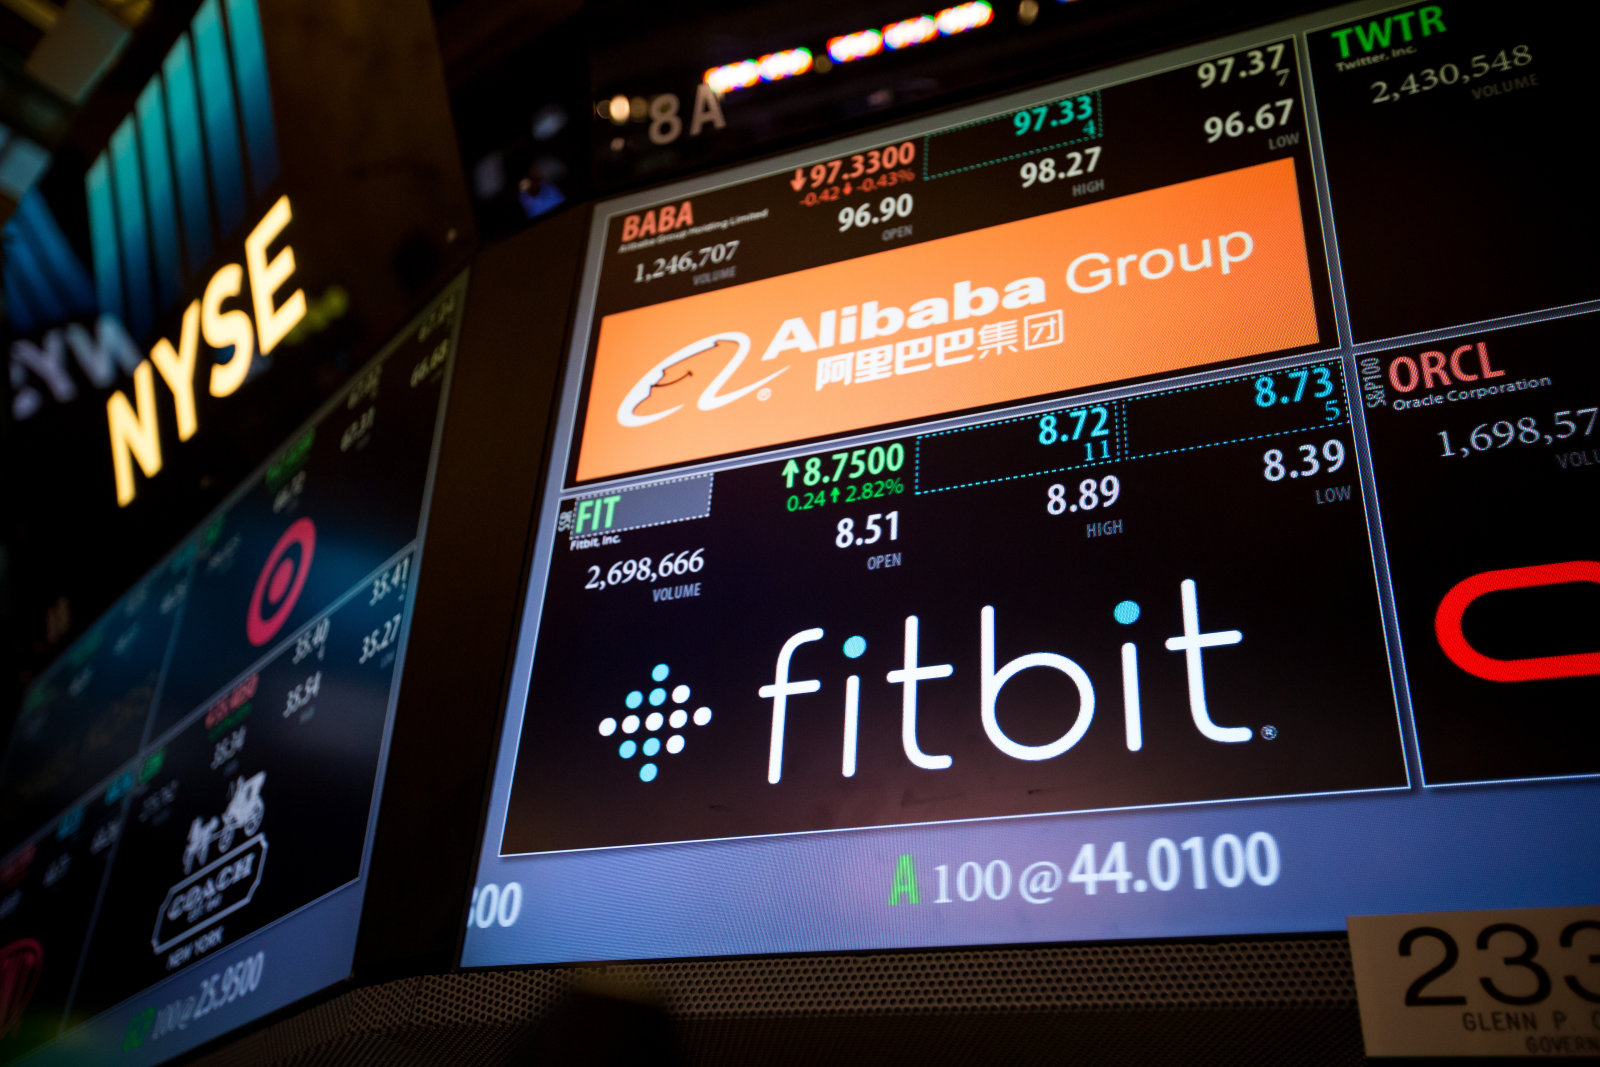 Wearable Decline Hits Fitbit